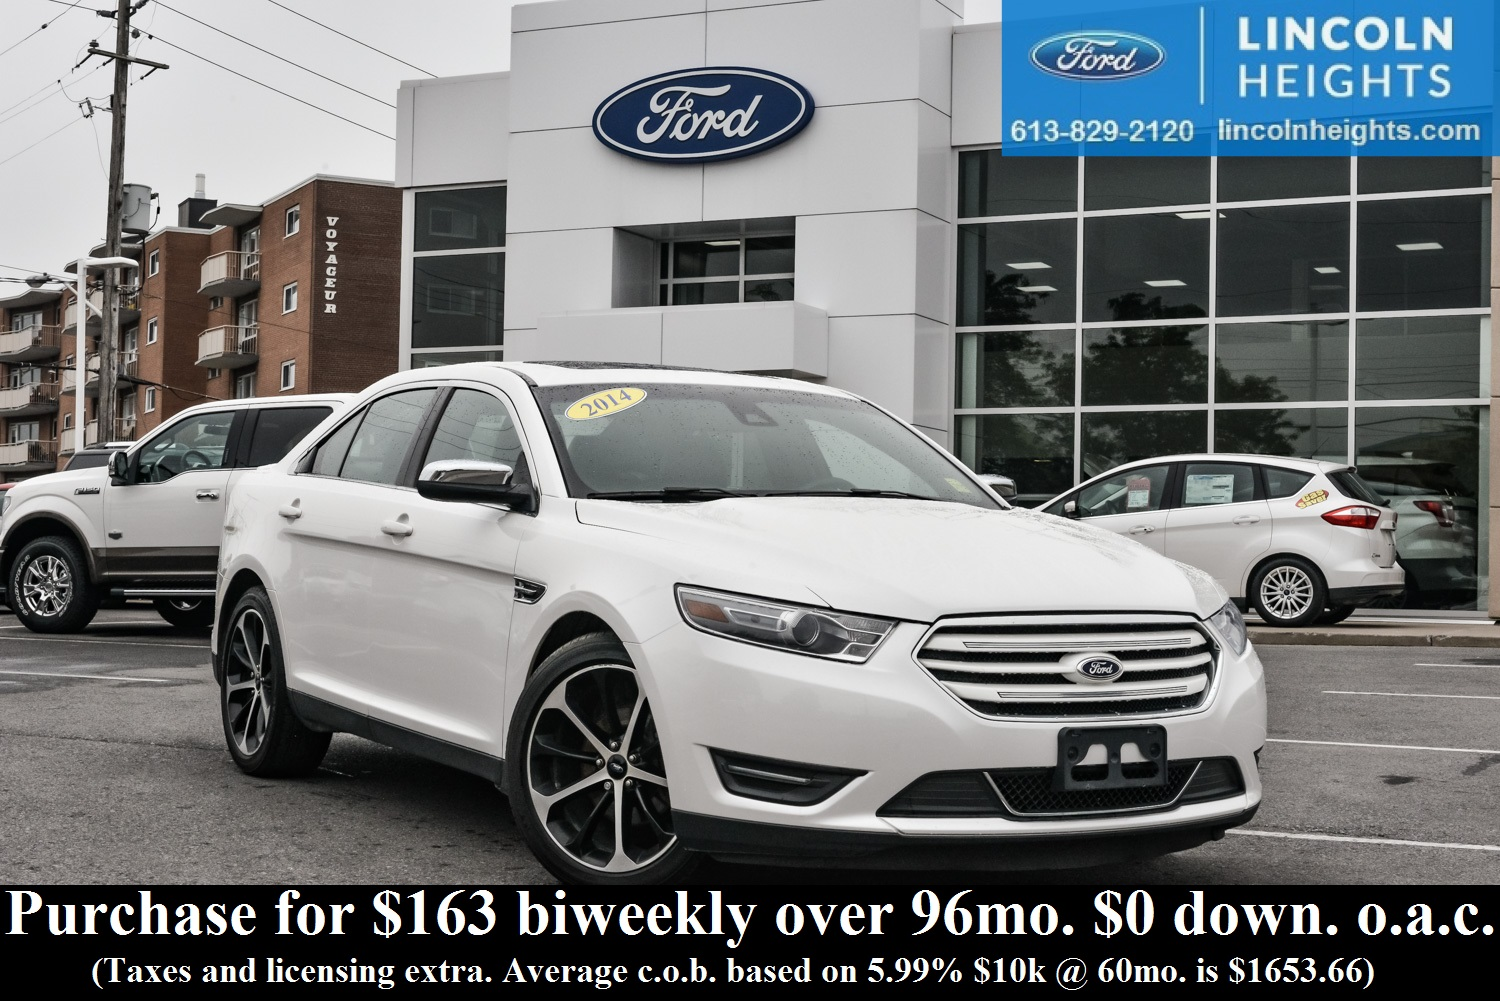 2014 ford taurus limited awd leather bluetooth pwr moonroof heated seats